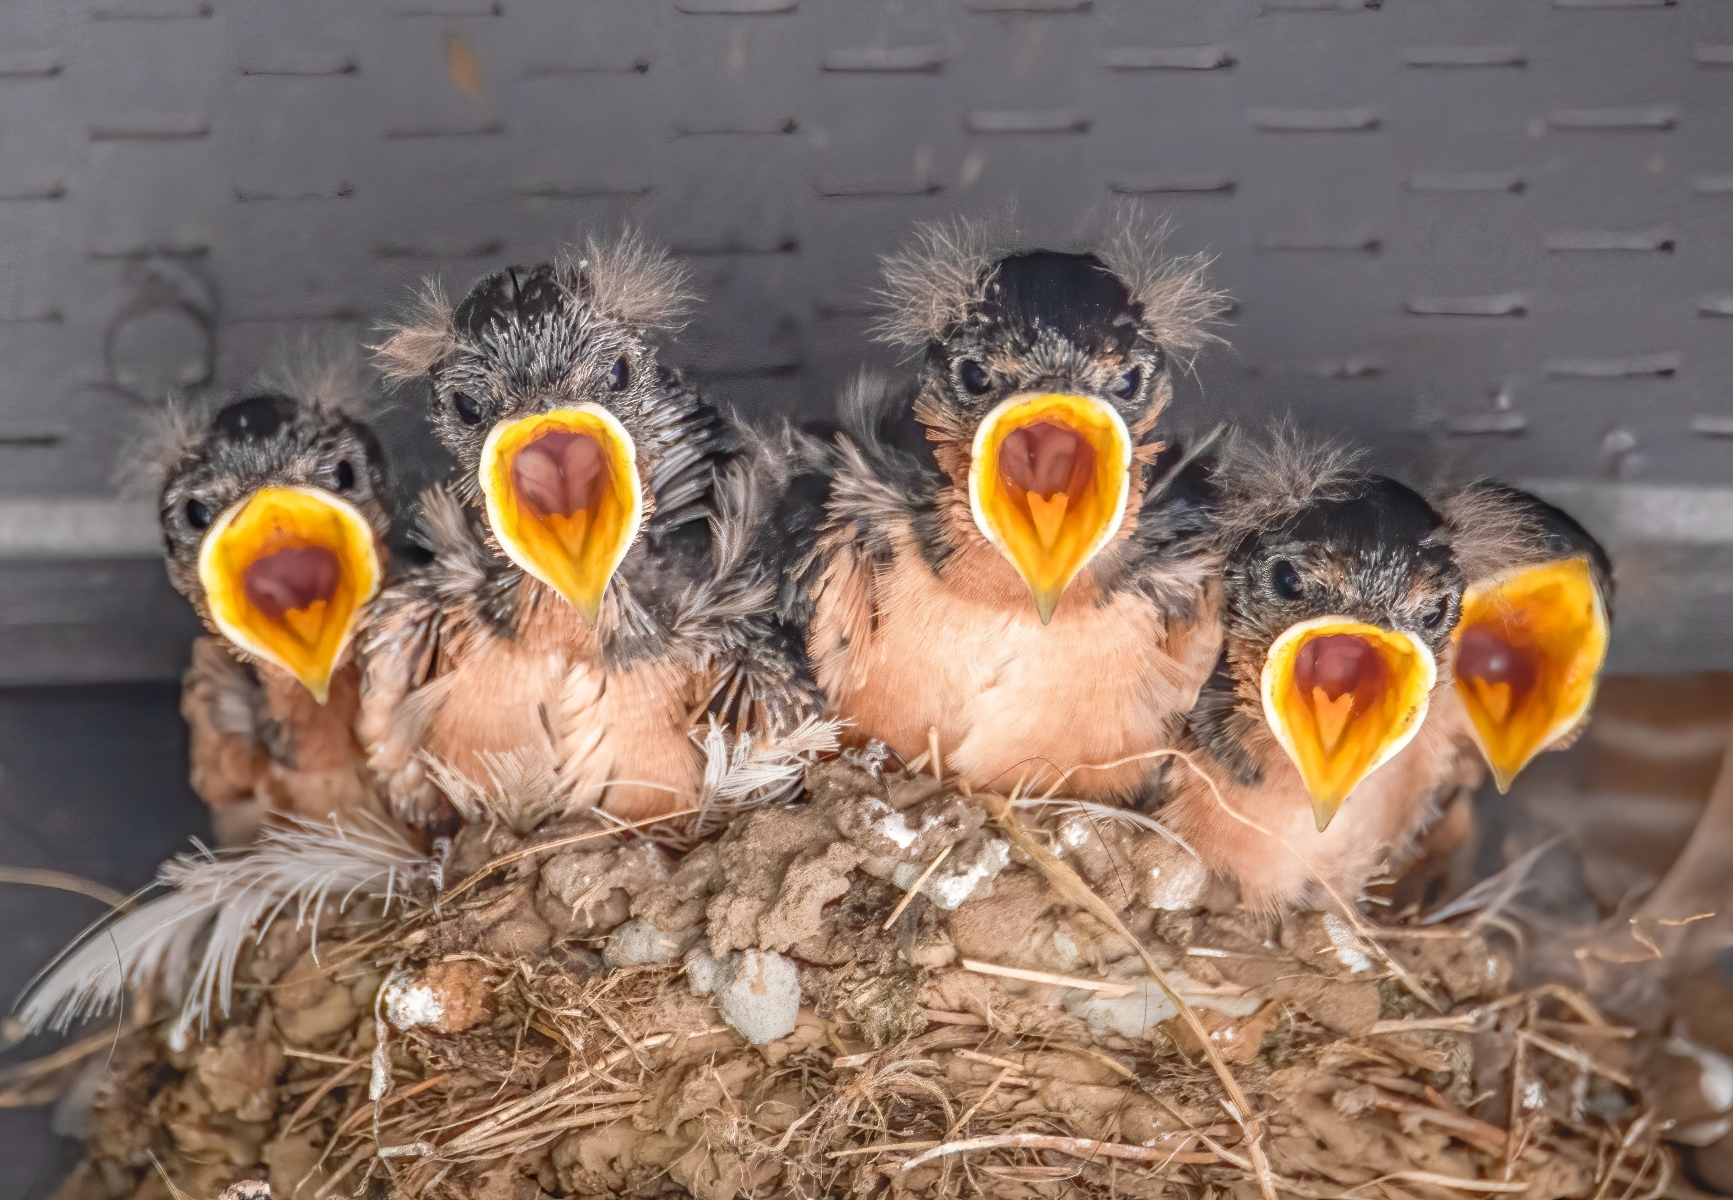 Barn-Swallow-chicks-open-their-mouths-as-soon-as-they-see-their-parent-approach.-NA-Best-in-Show-by-Denise-Crawford-ML